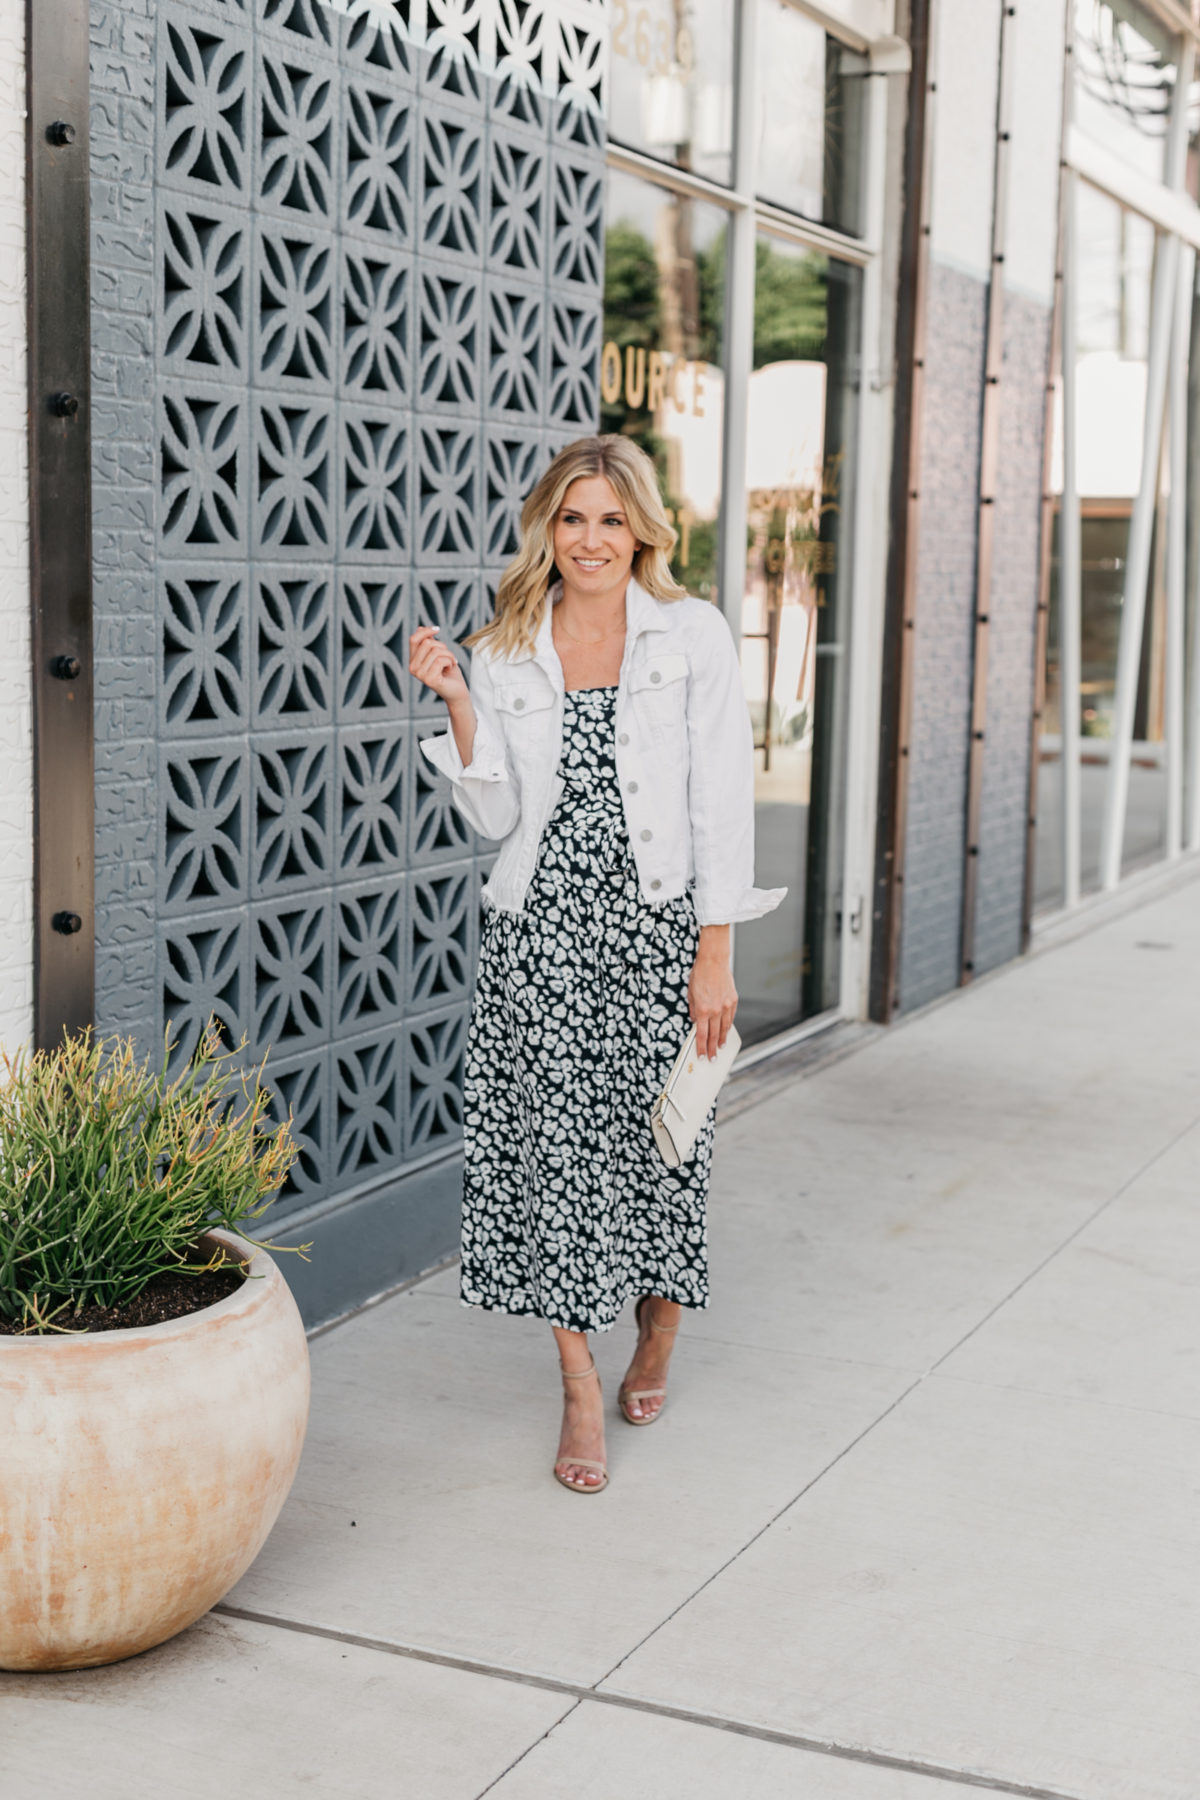 summer vacation outfits - White jacket and navy leopard jumpsuit from Banana Republic